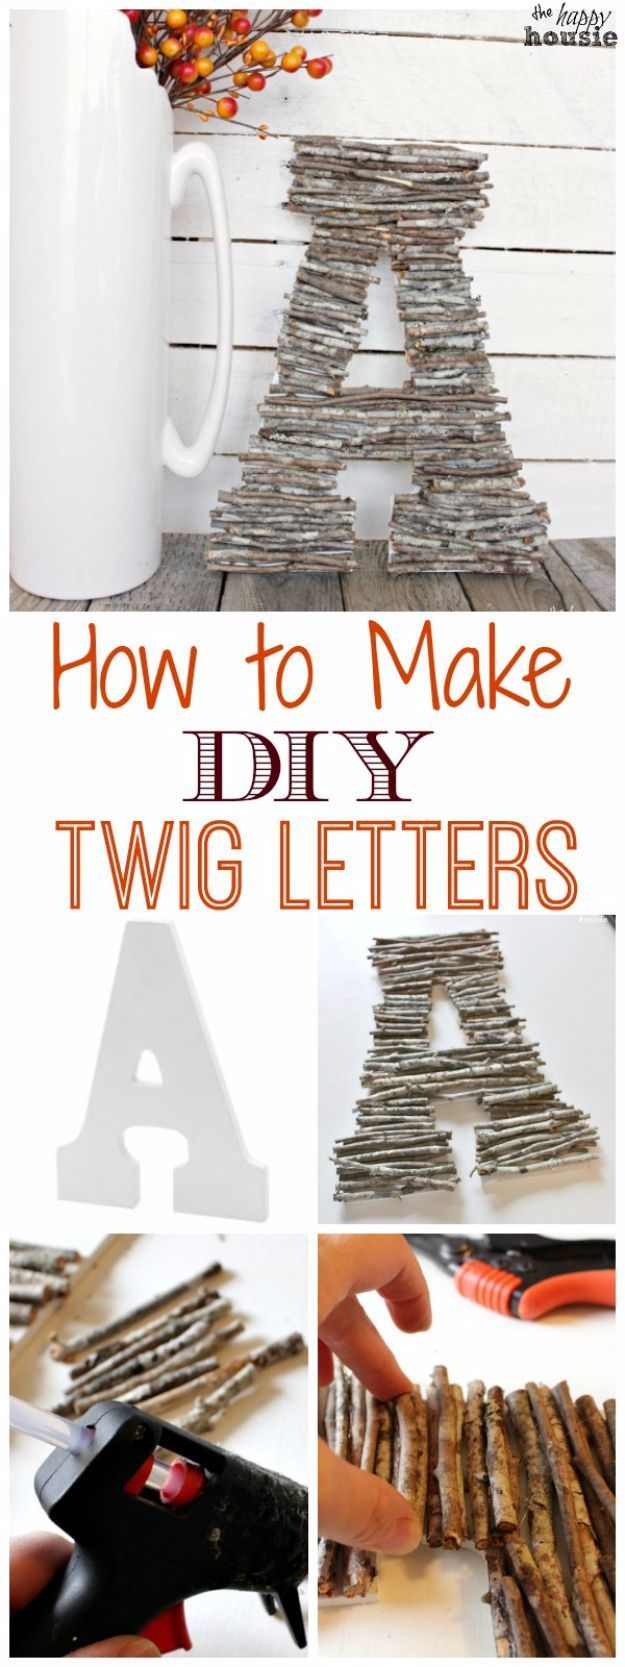 diy wall letters and initals wall art diy twig letters cool architectural letter projects for living room decor bedroom ideas girl or boy nursery